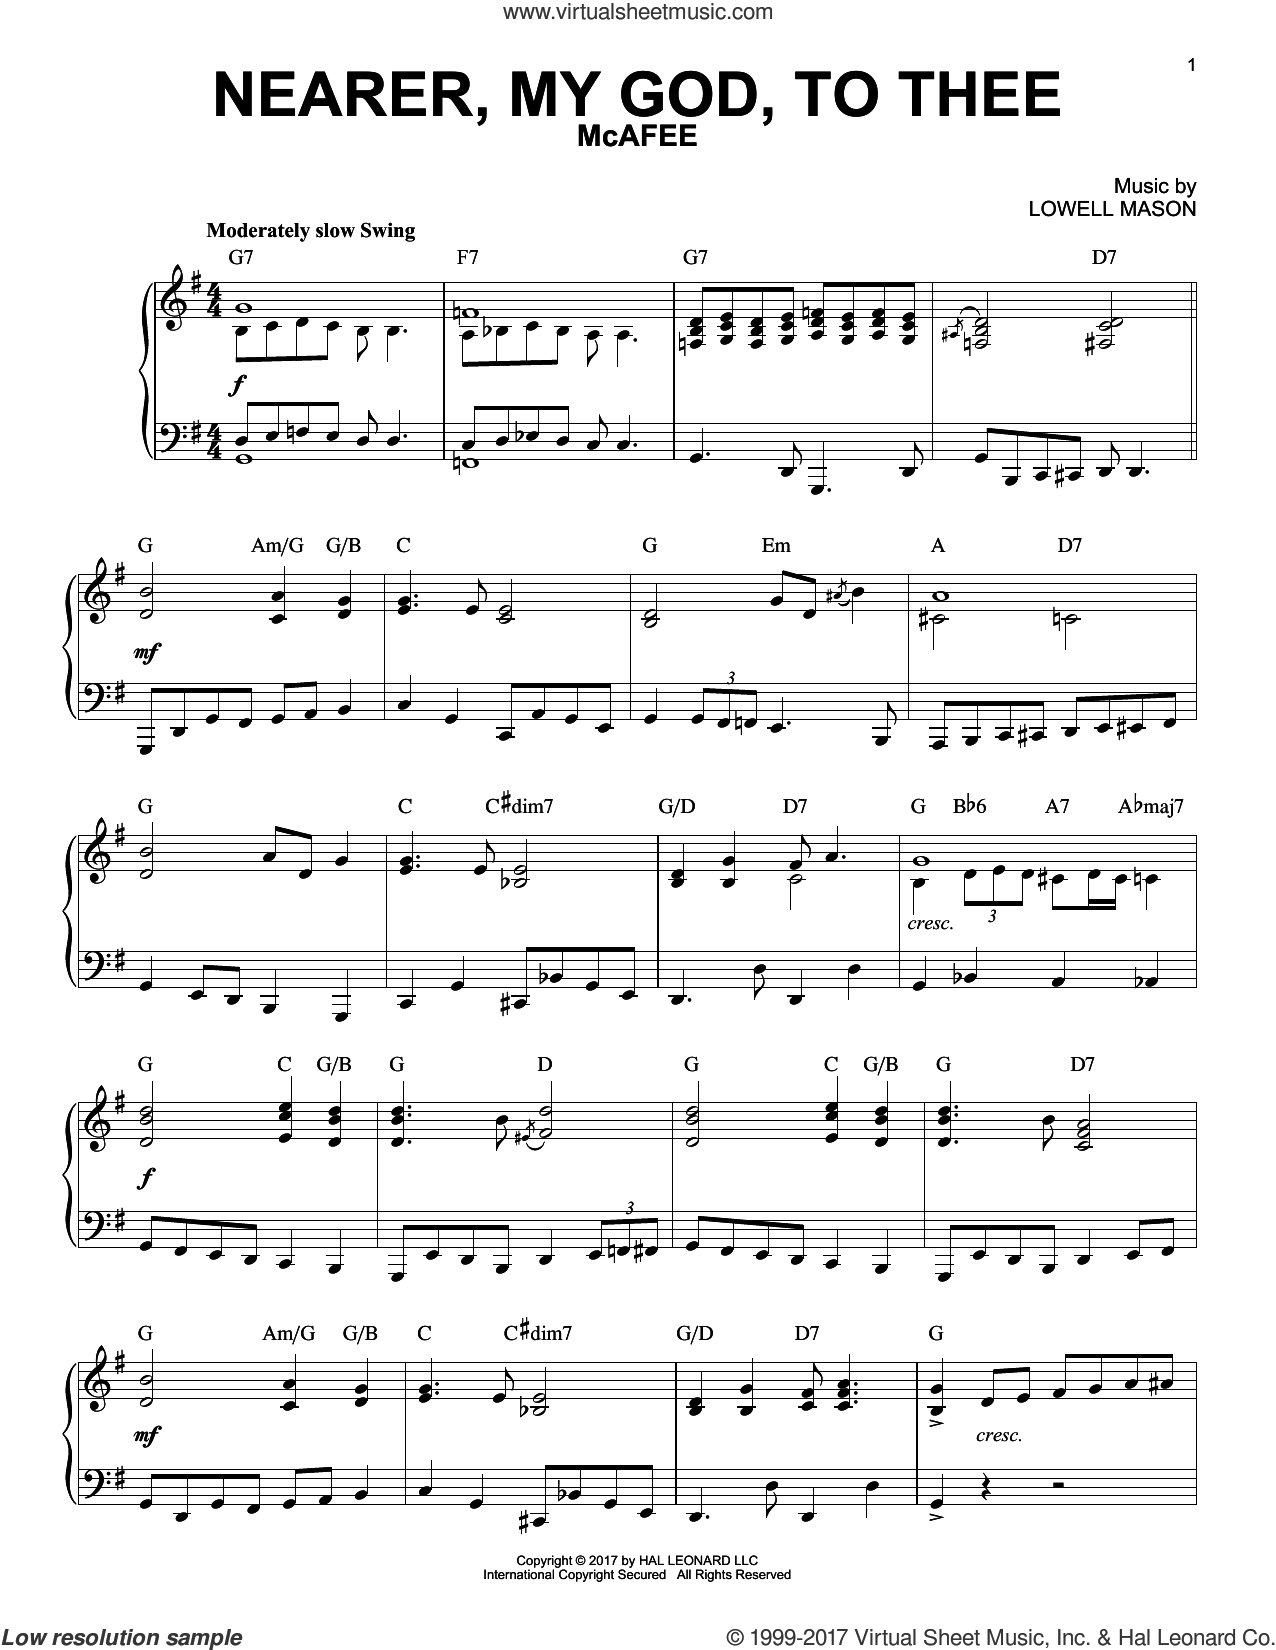 Nearer, My God, To Thee sheet music for piano solo by Lowell Mason, Genesis 28:10-22 and Sarah F. Adams, intermediate